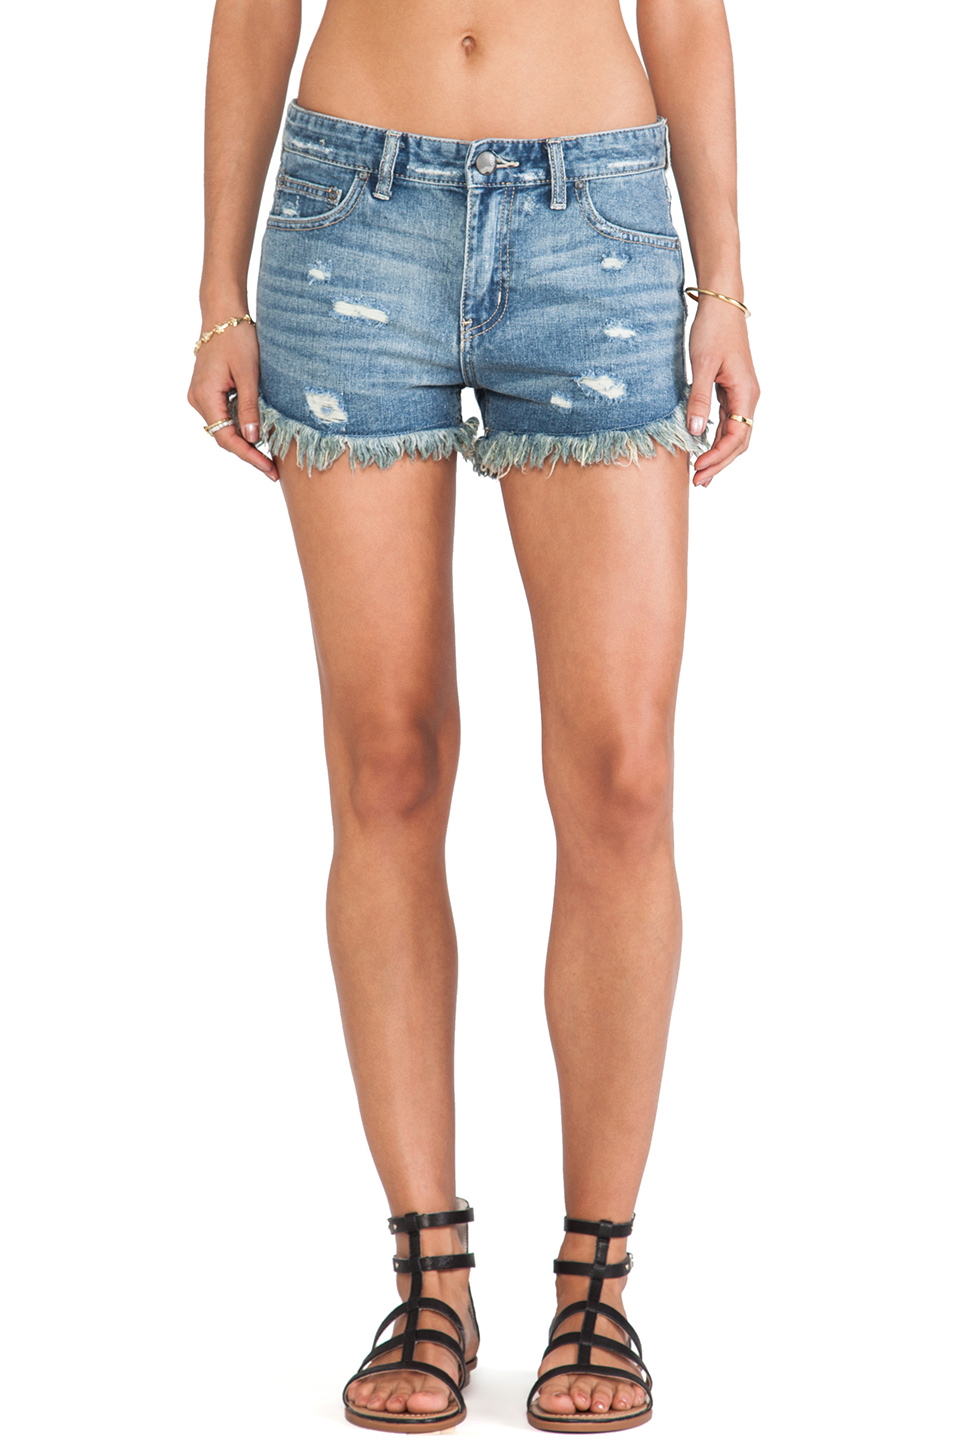 Free People Rugged Ripped Denim Short in True Blue from REVOLVEclothing.com